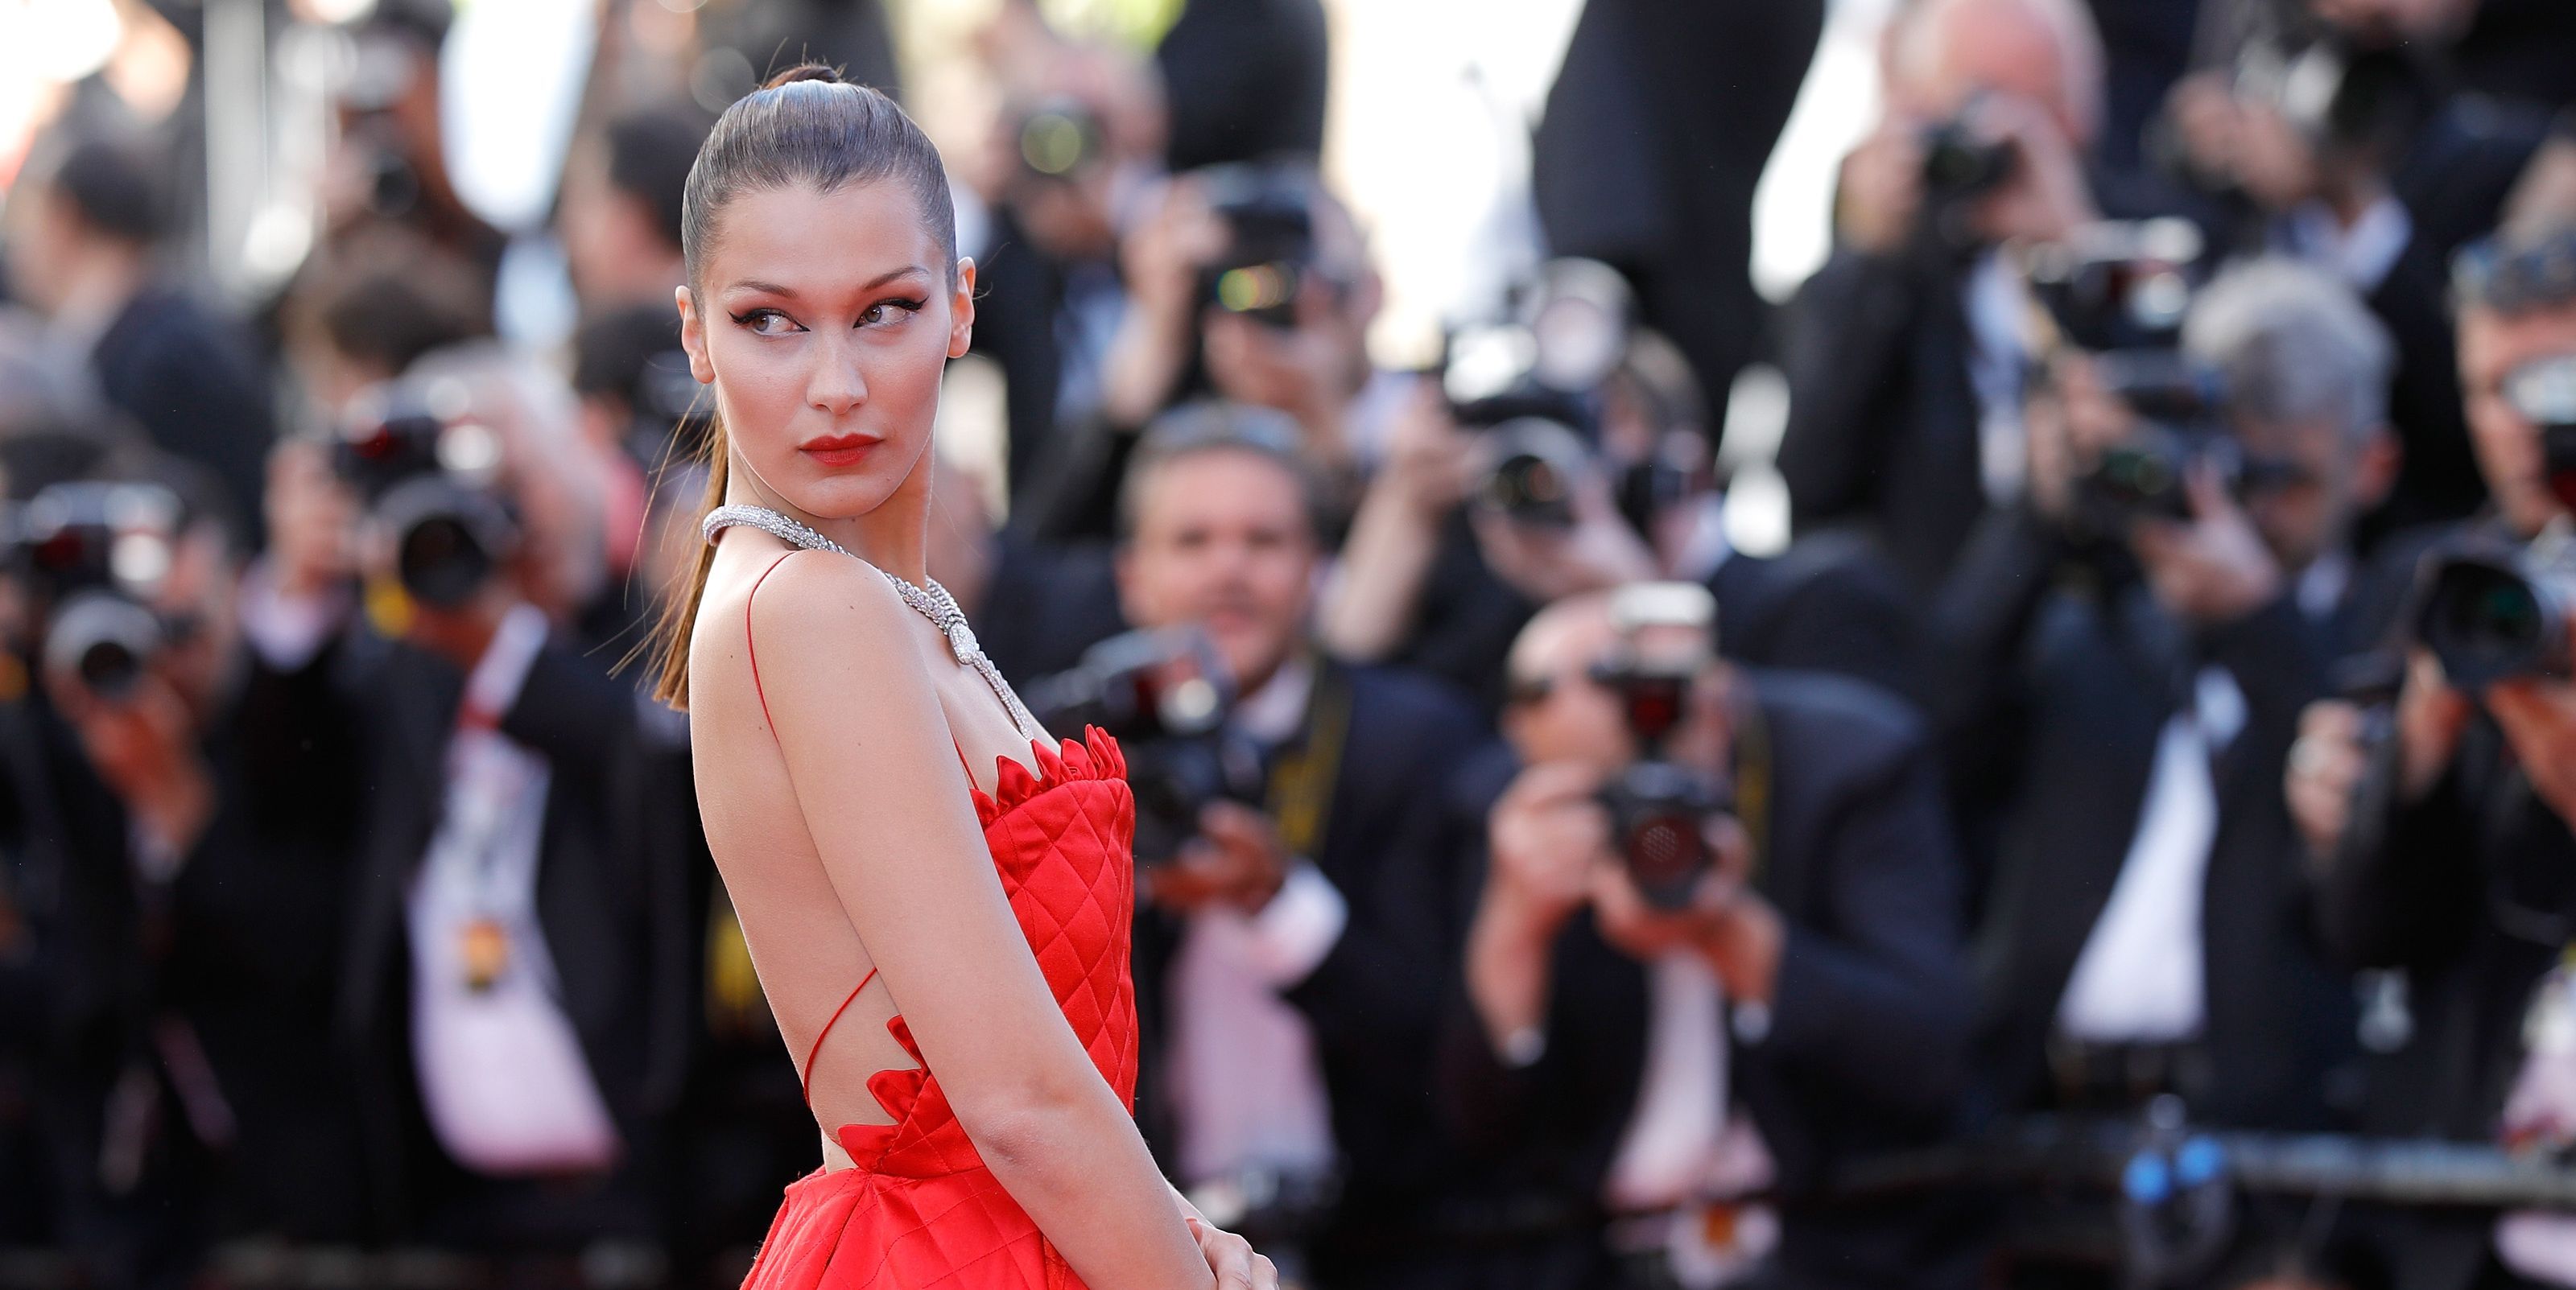 Bella Hadid Wins Again on the Cannes Red Carpet